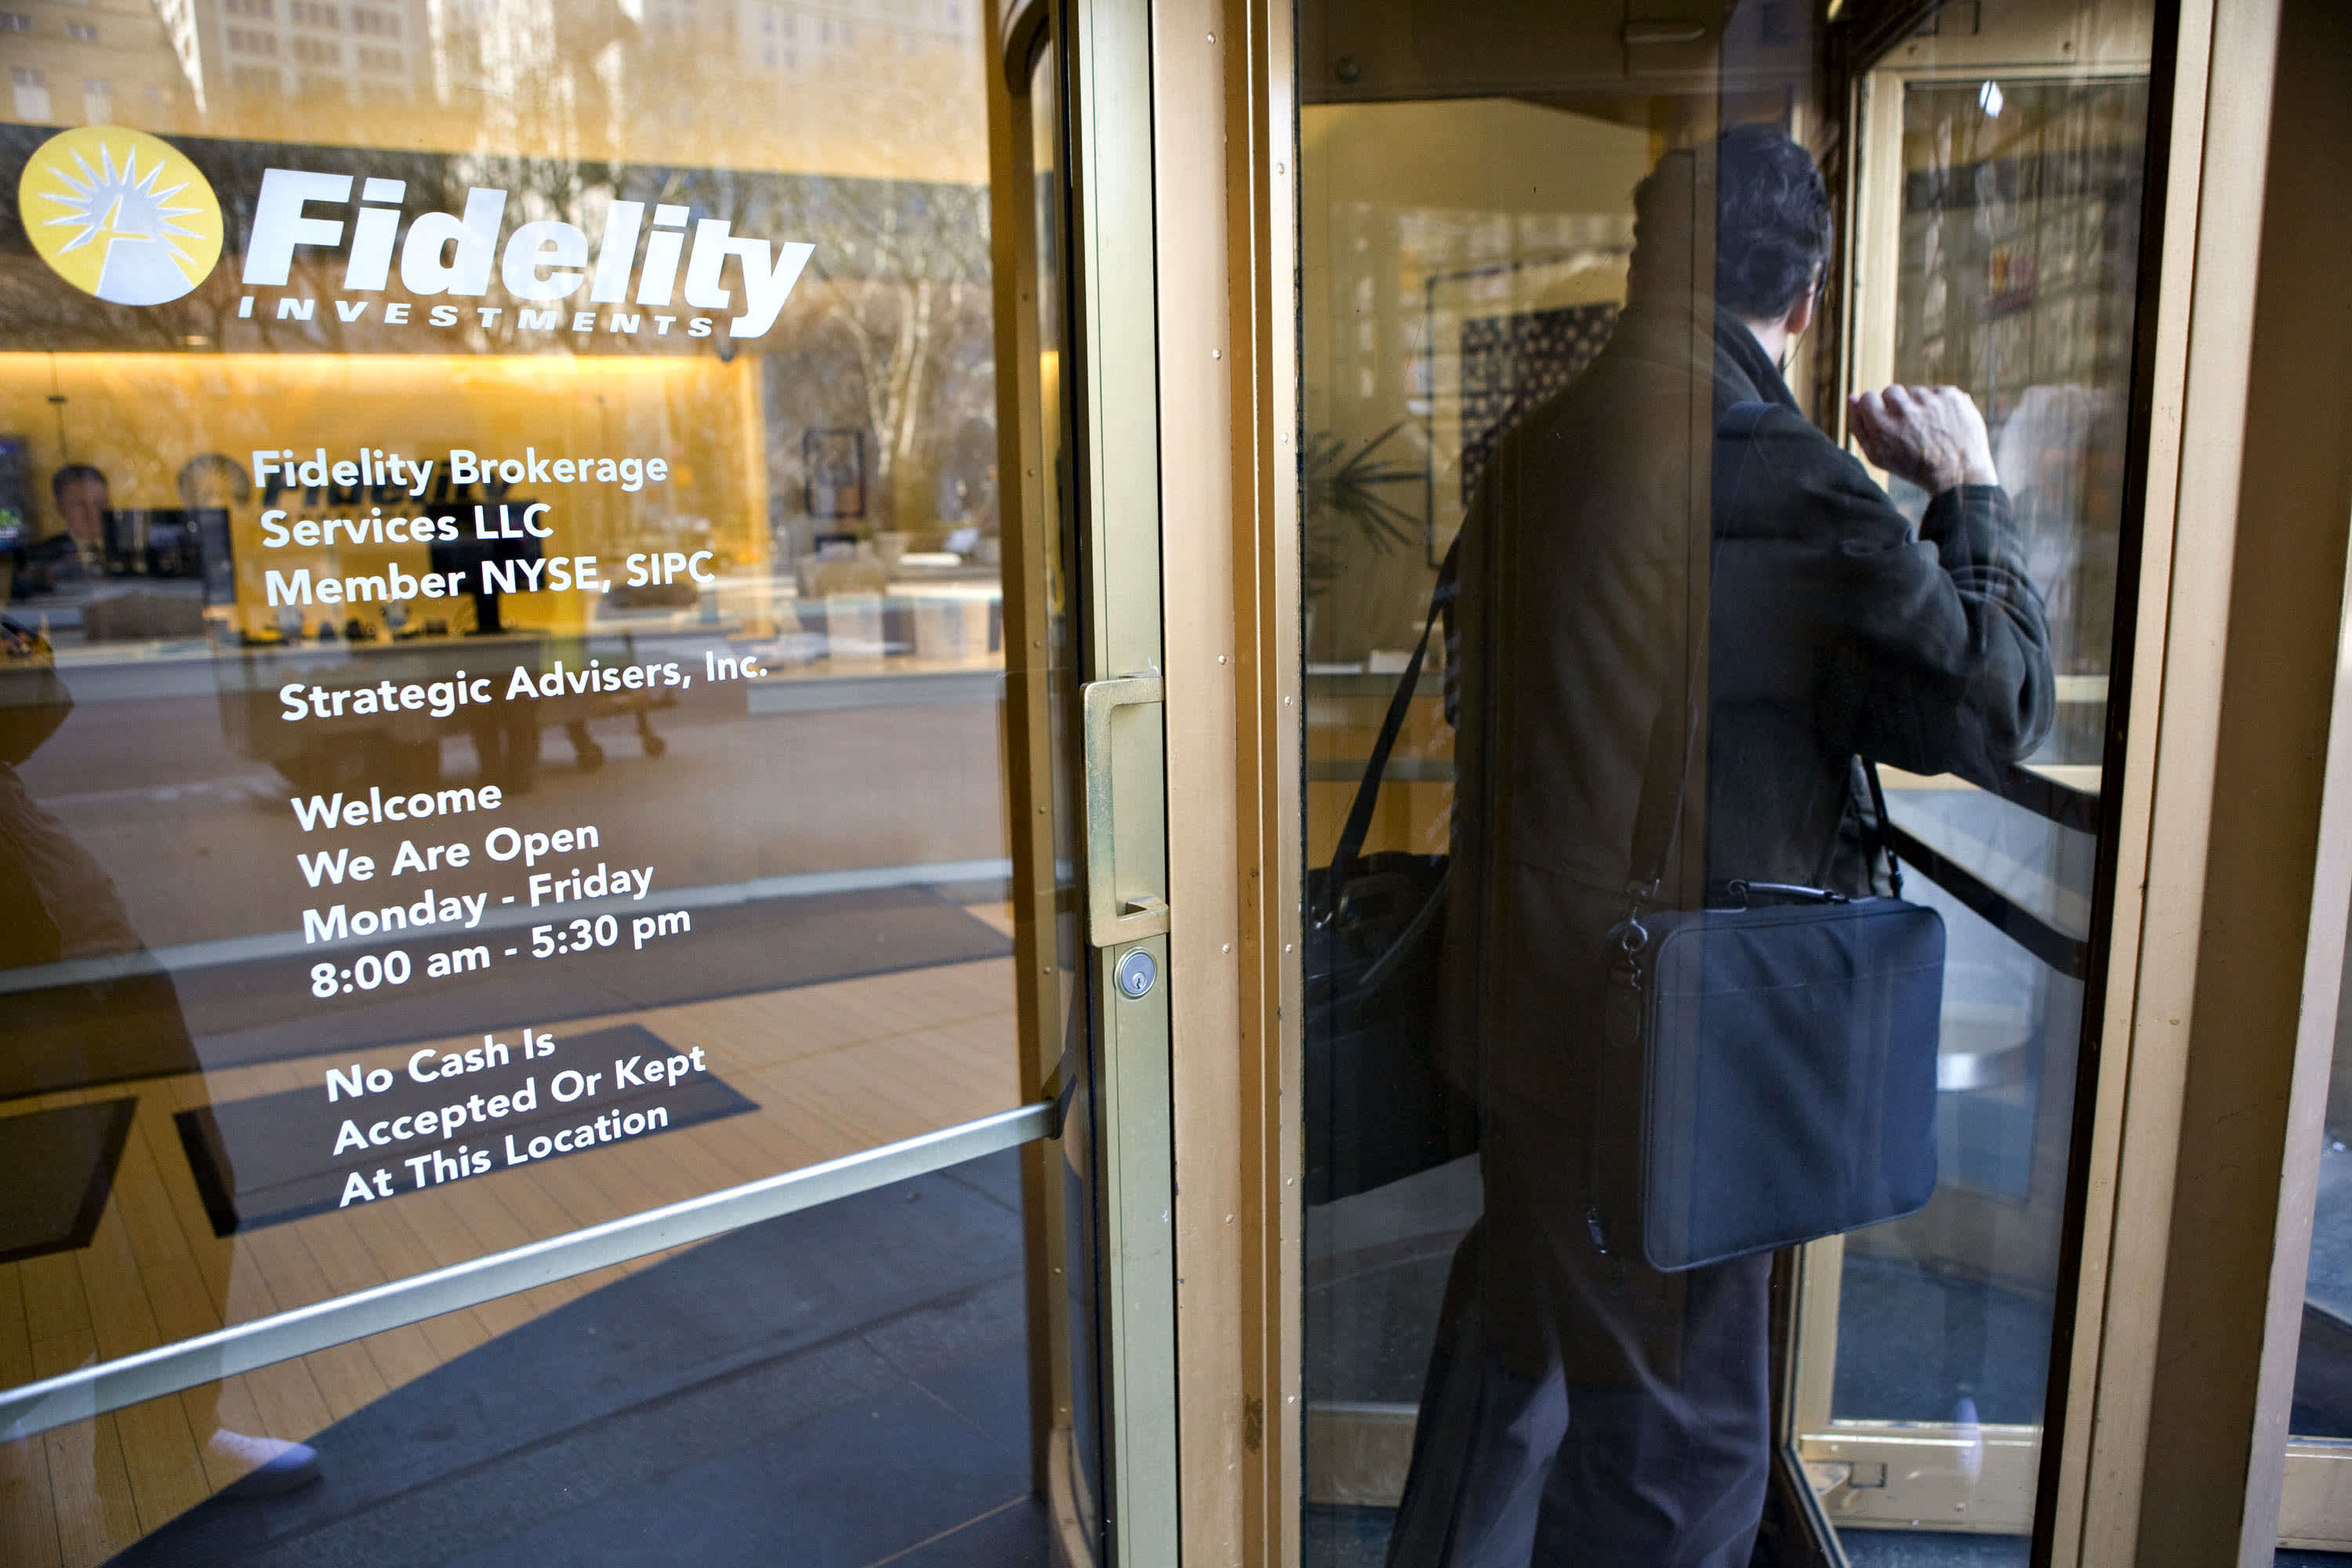 Retirement savers moving some money out of stocks, says Fidelity's personal investing president